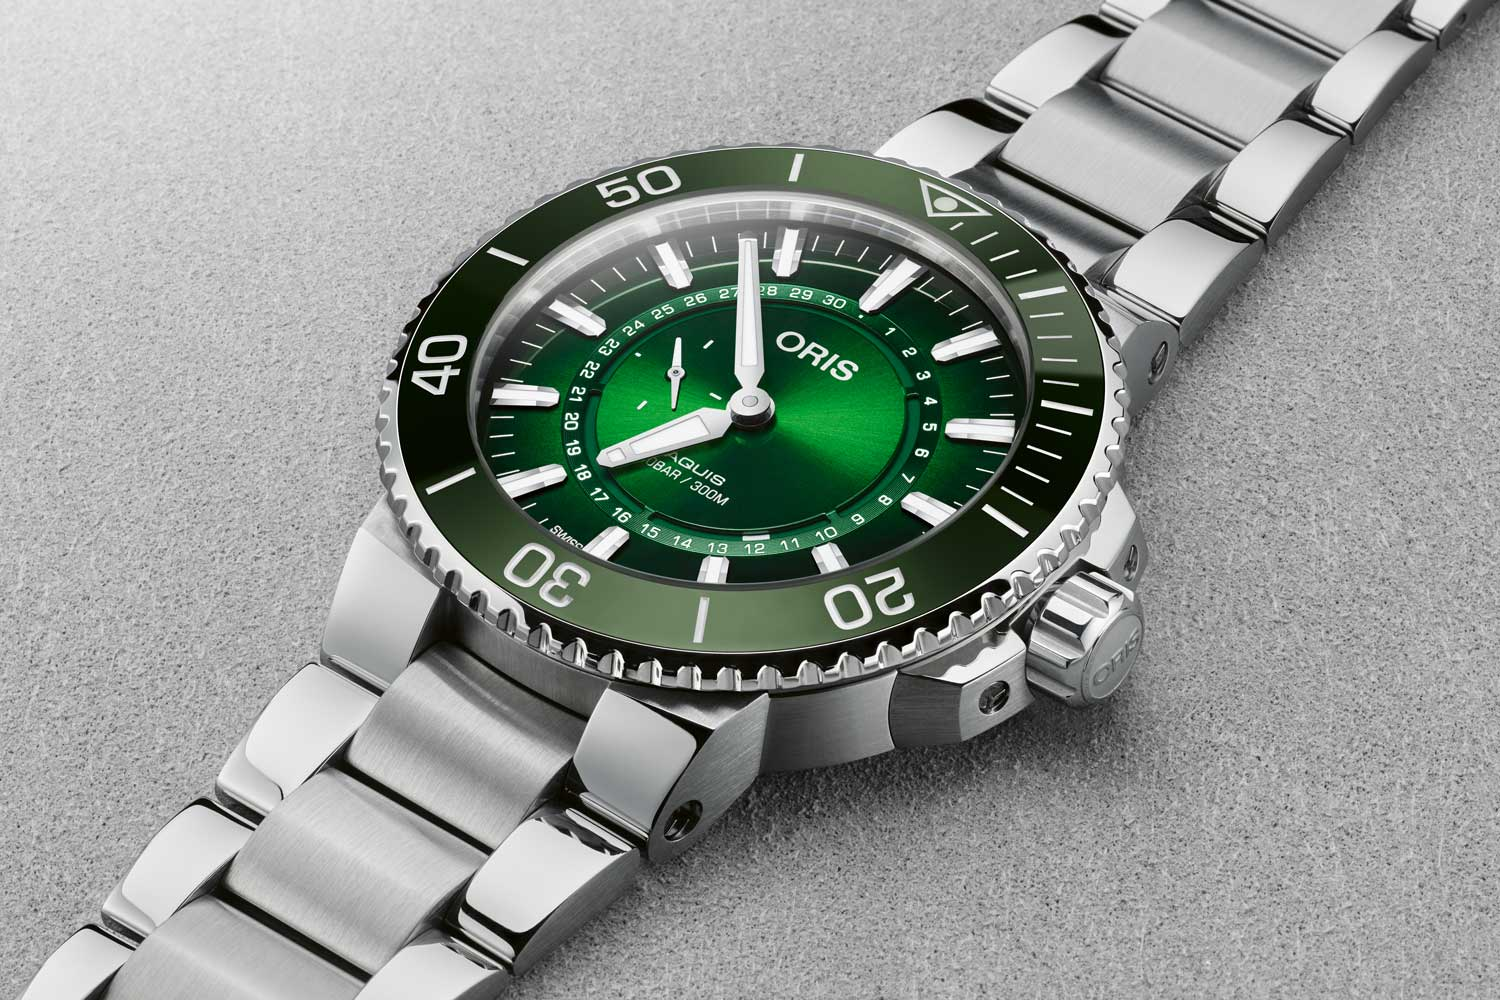 The Oris Hangang Limited Edition. A new limited edition diver's watch supporting a Seoul-based project to clean up South Korea's mighty Hangang River.